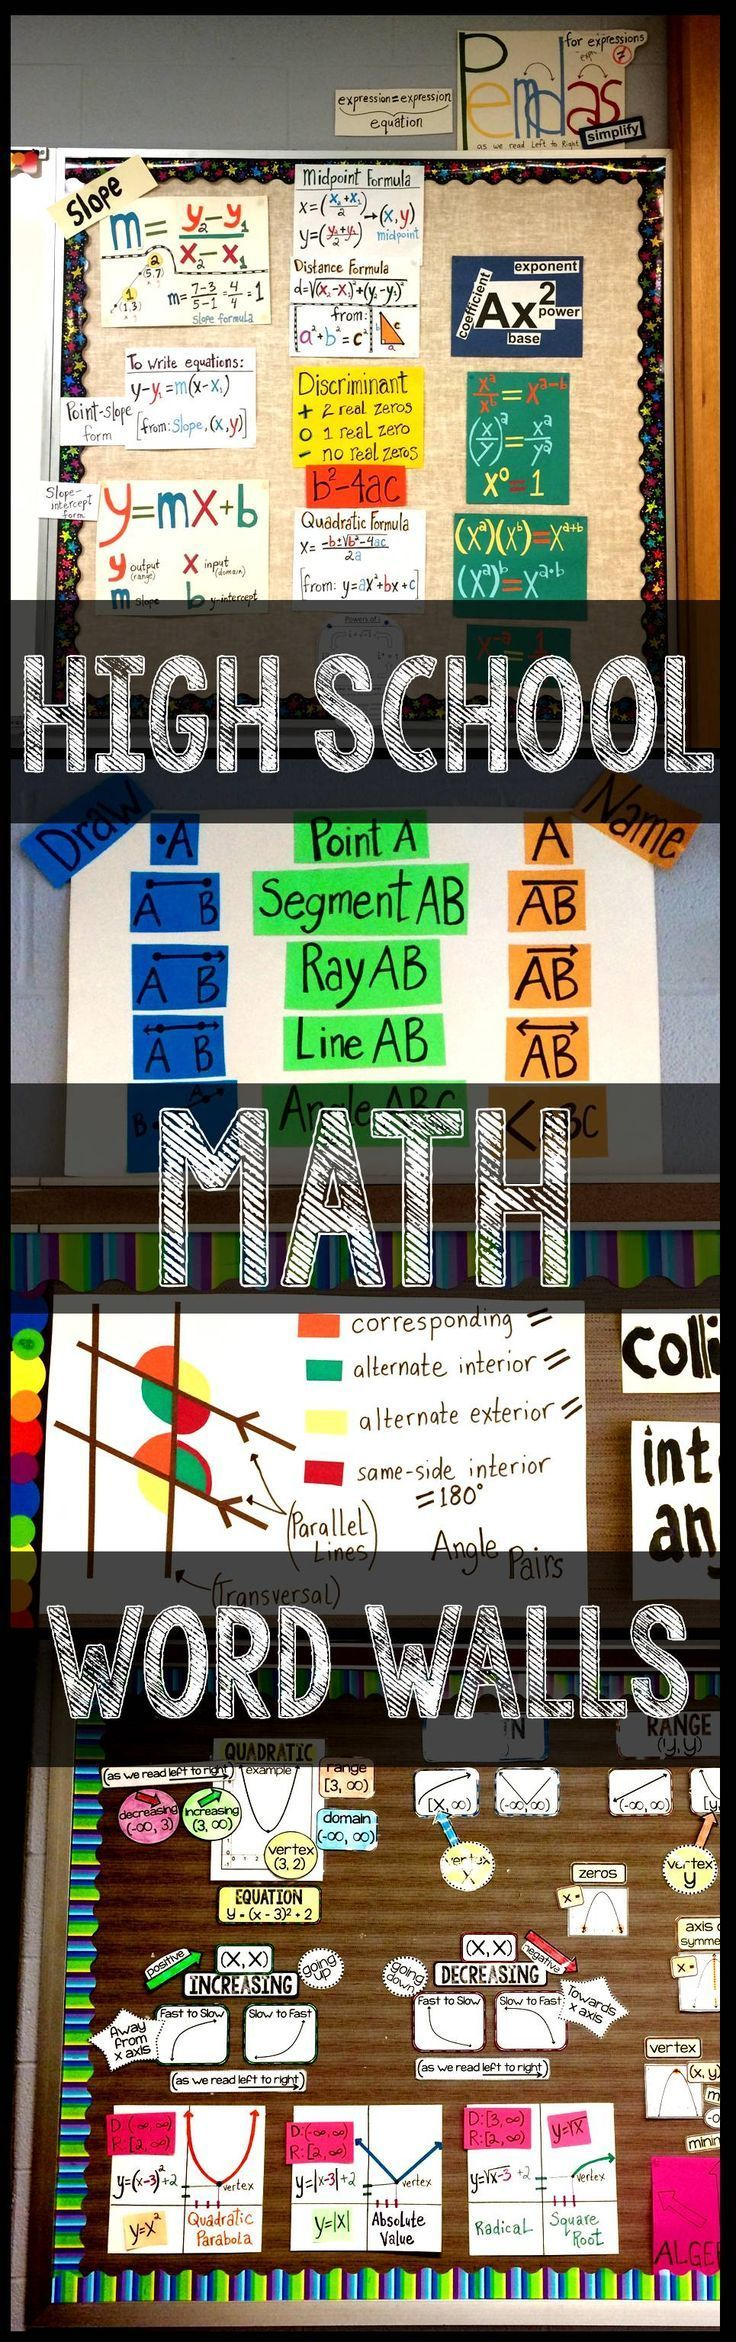 High school Math word wall ideas. Bulletin board ideas for algebra, geometry and algebra 2 with links to downloads. Word walls are so important, especially in special education math classes where retention of material can be an issue. Having all the visual references right on the wall makes students confident and gives them a feeling of independence.